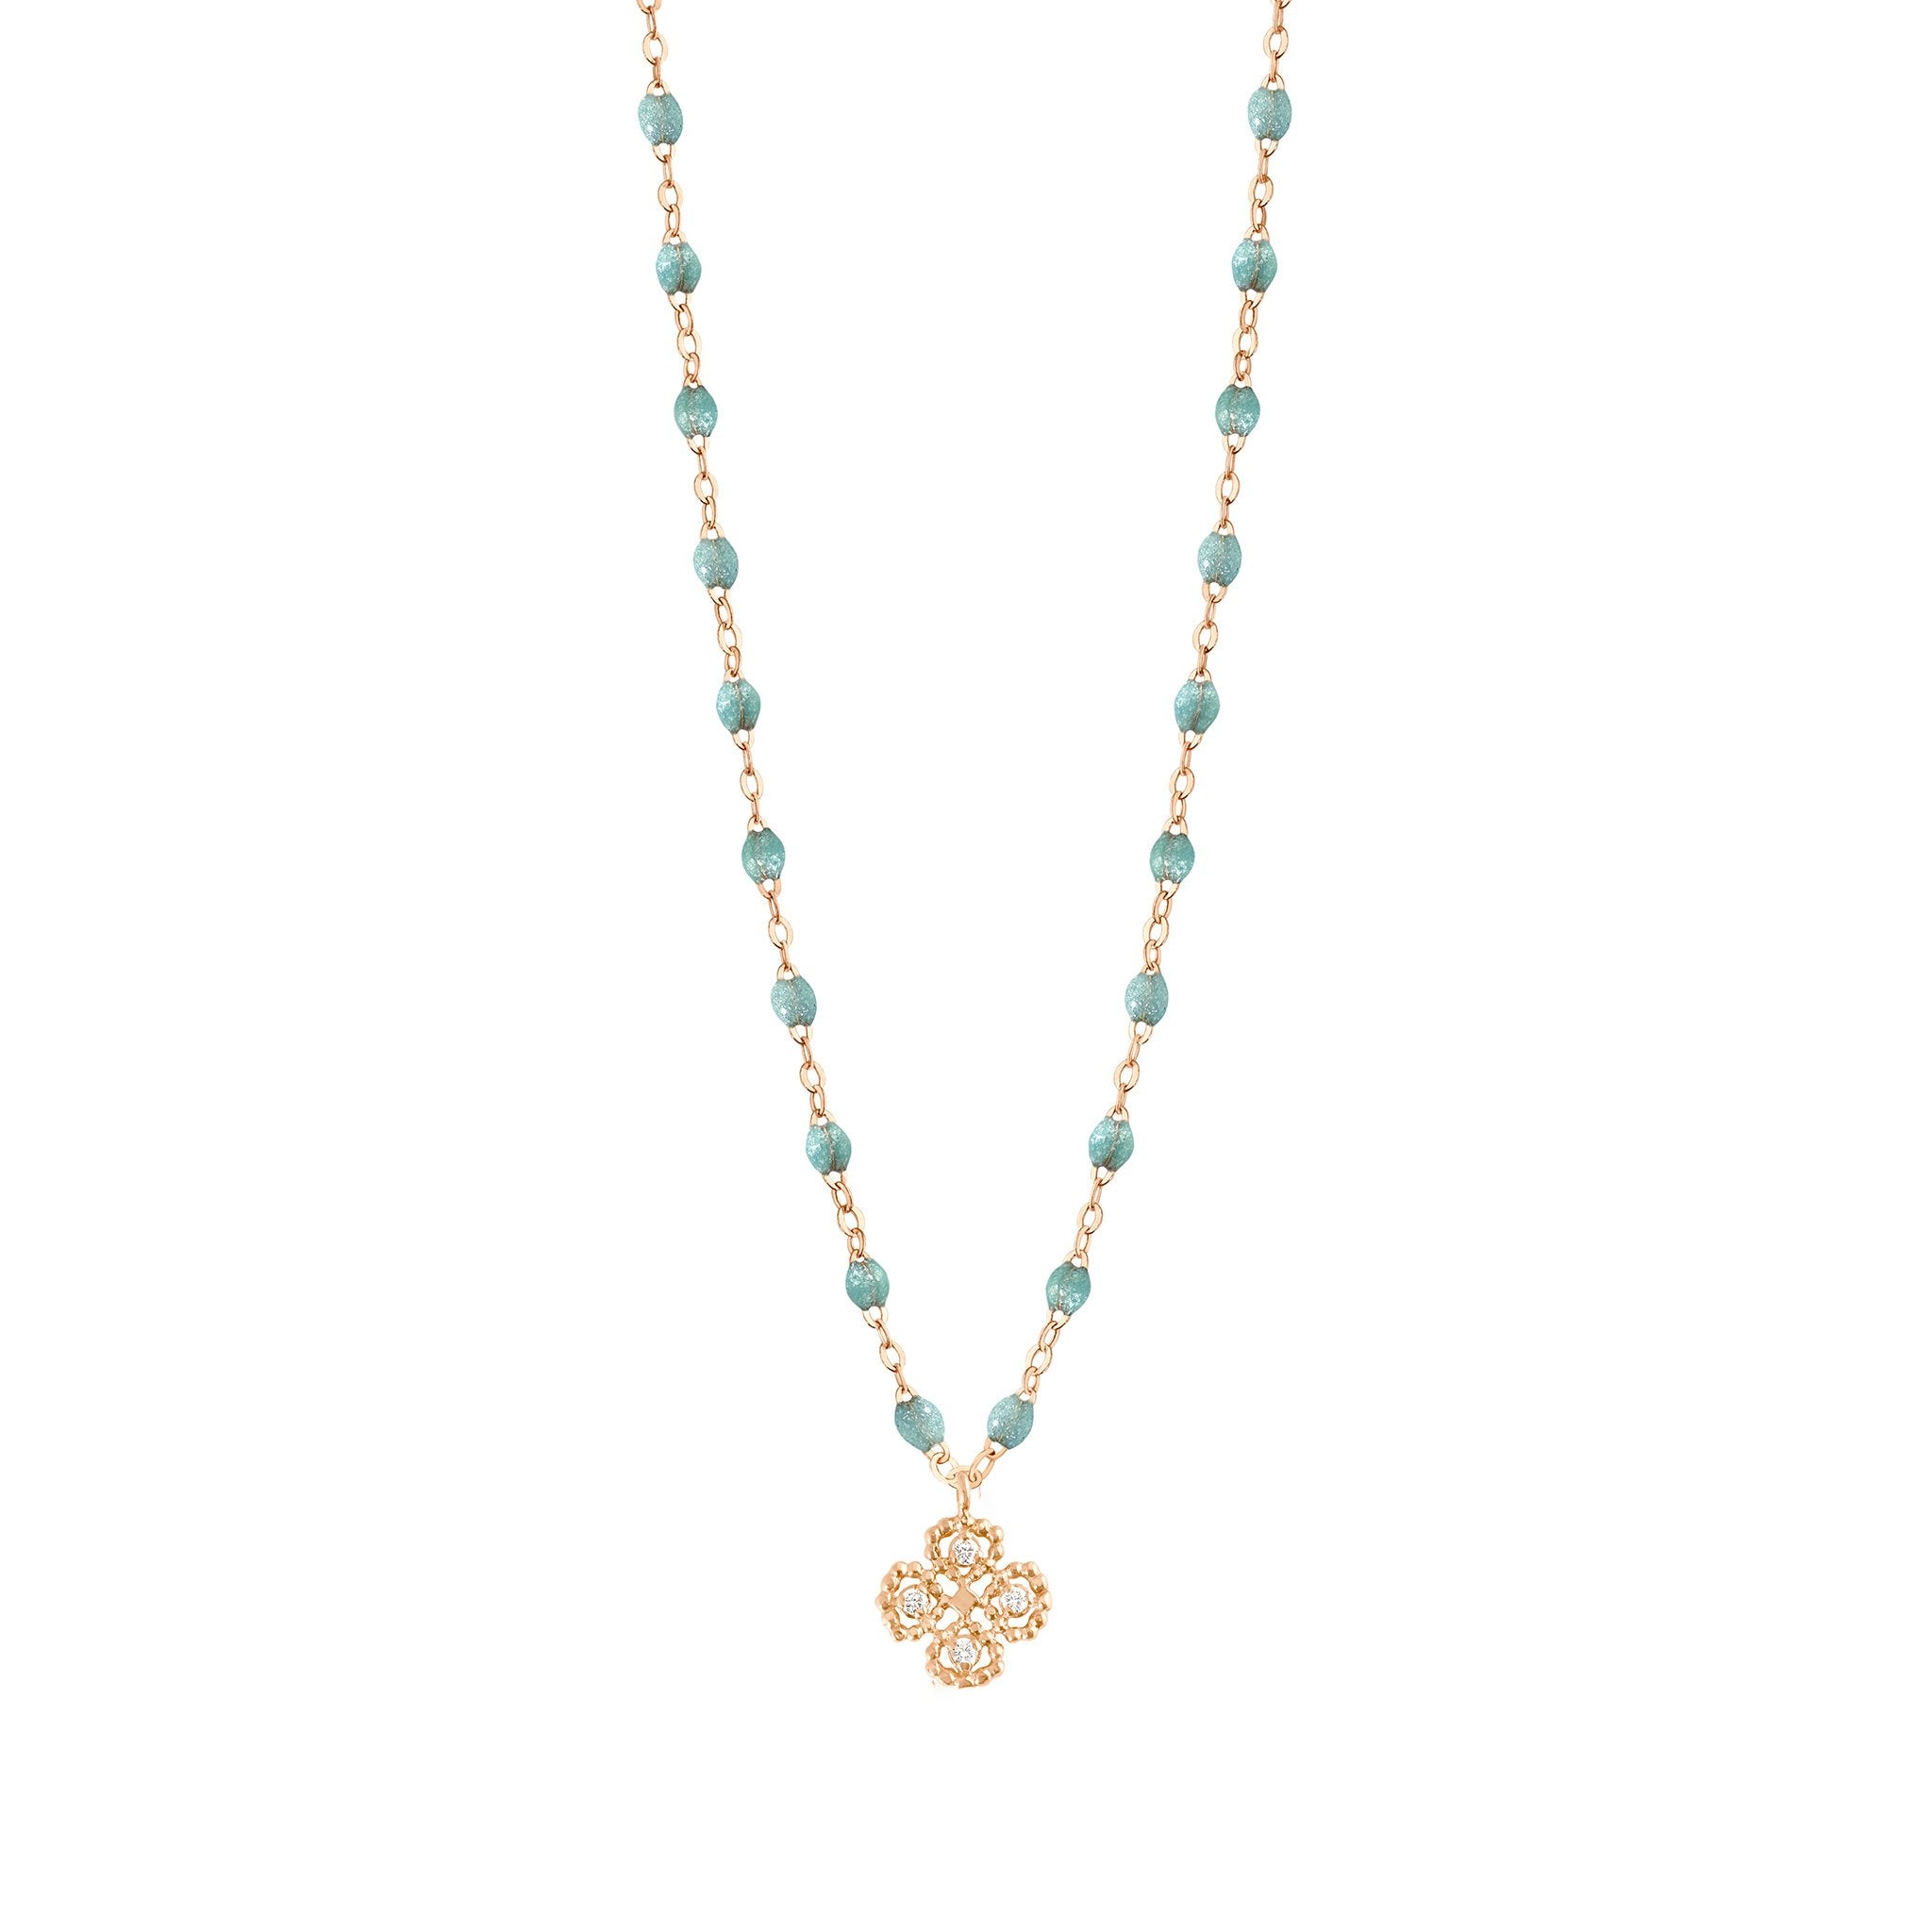 Gigi Clozeau - Collier glacier Lucky Trèfle, diamants, or rose, 42 cm